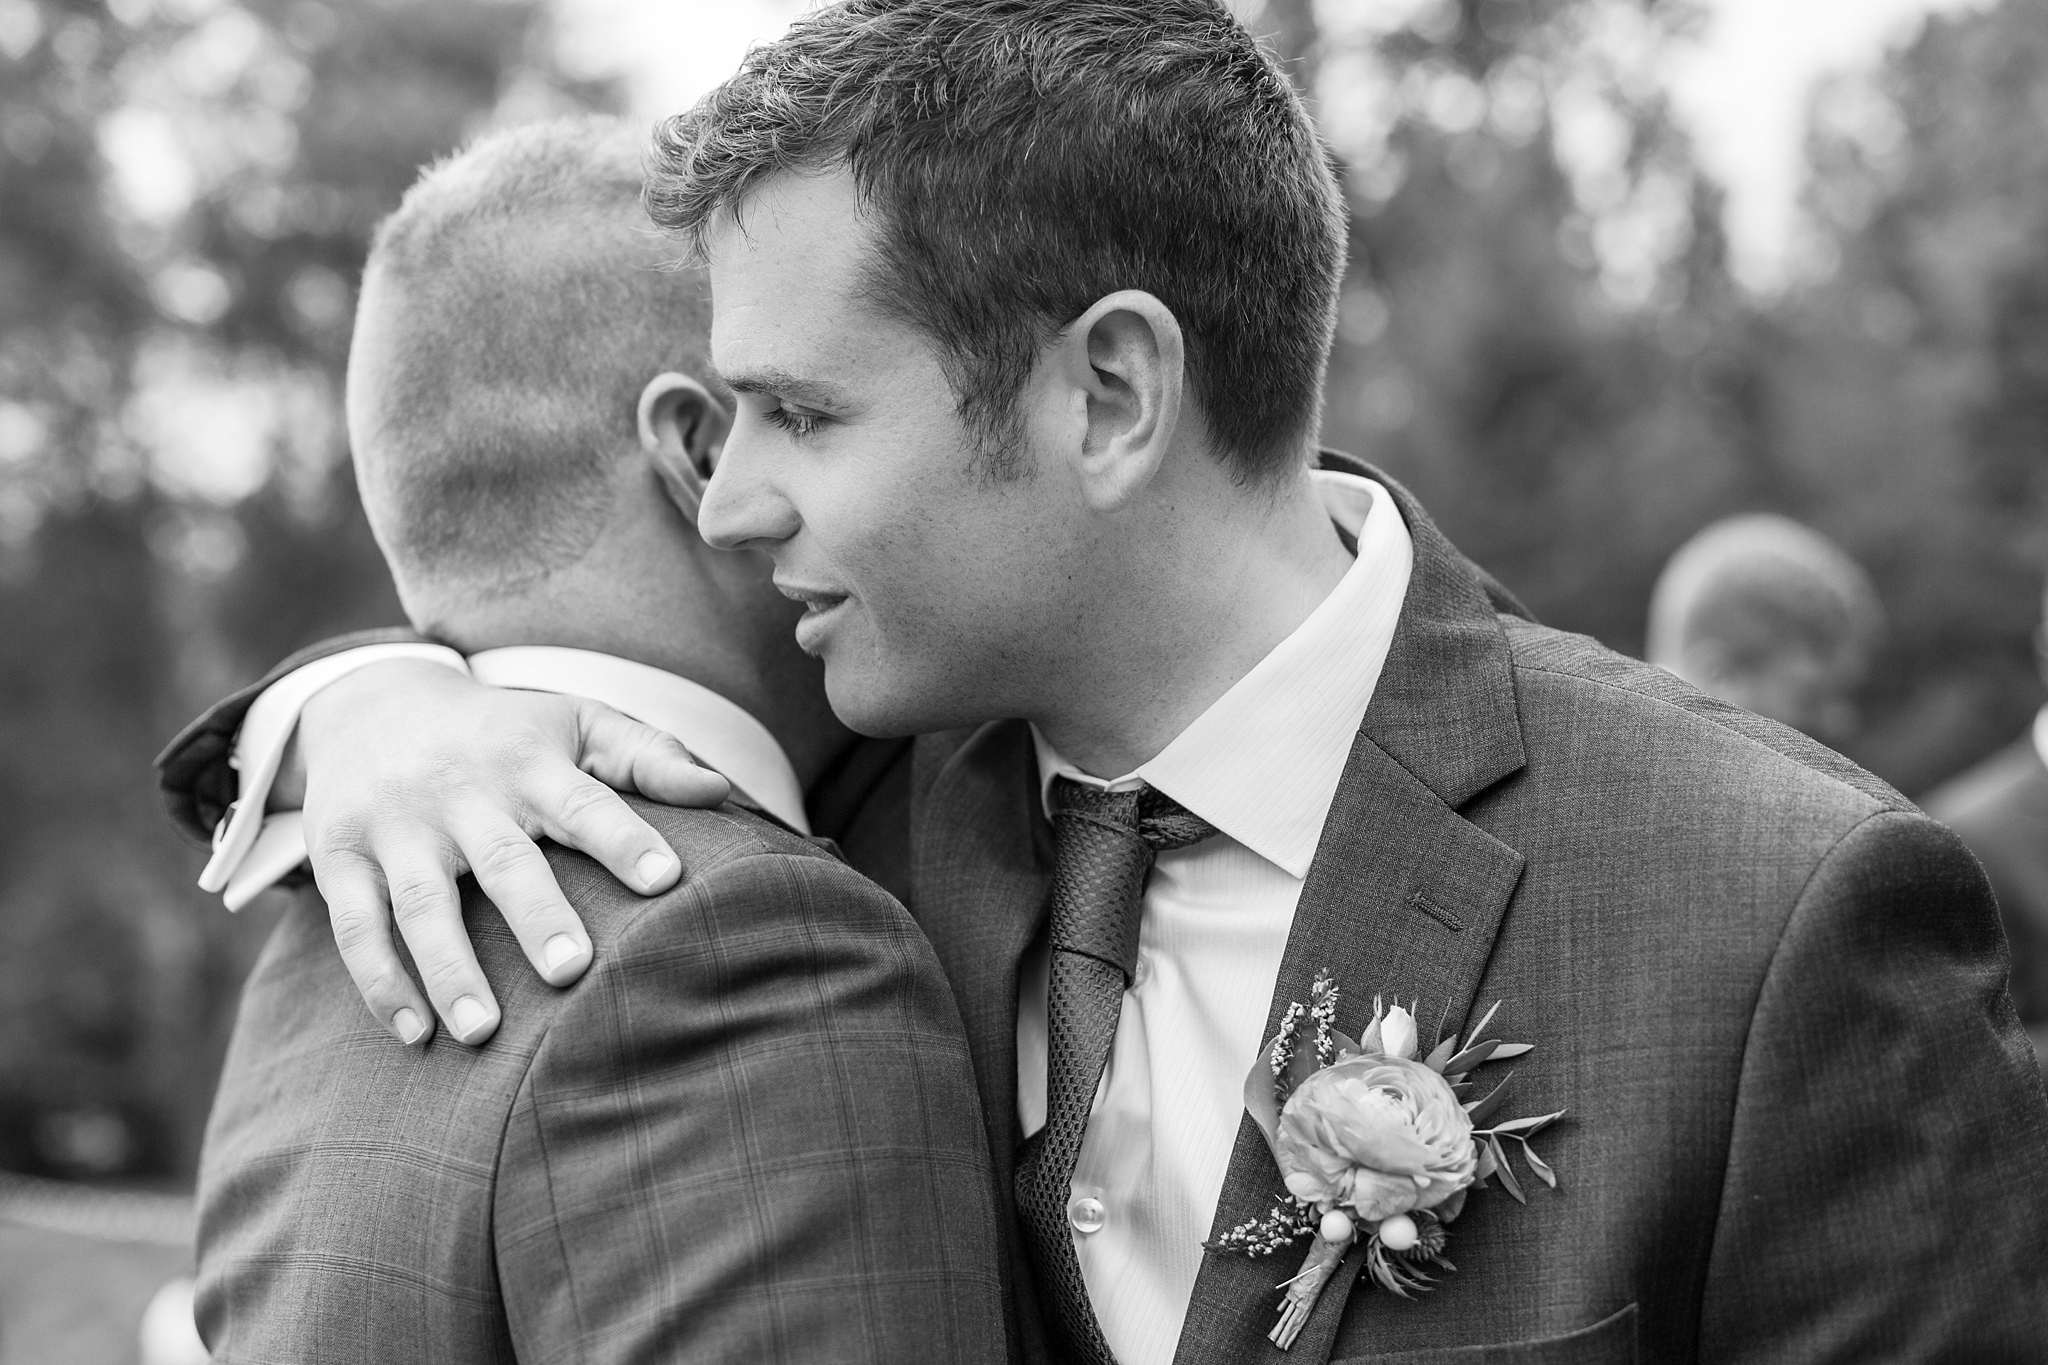 romantic-artful-candid-wedding-photos-in-detroit-lansing-ann-arbor-northern-michigan-and-chicago-by-courtney-carolyn-photography_0048.jpg